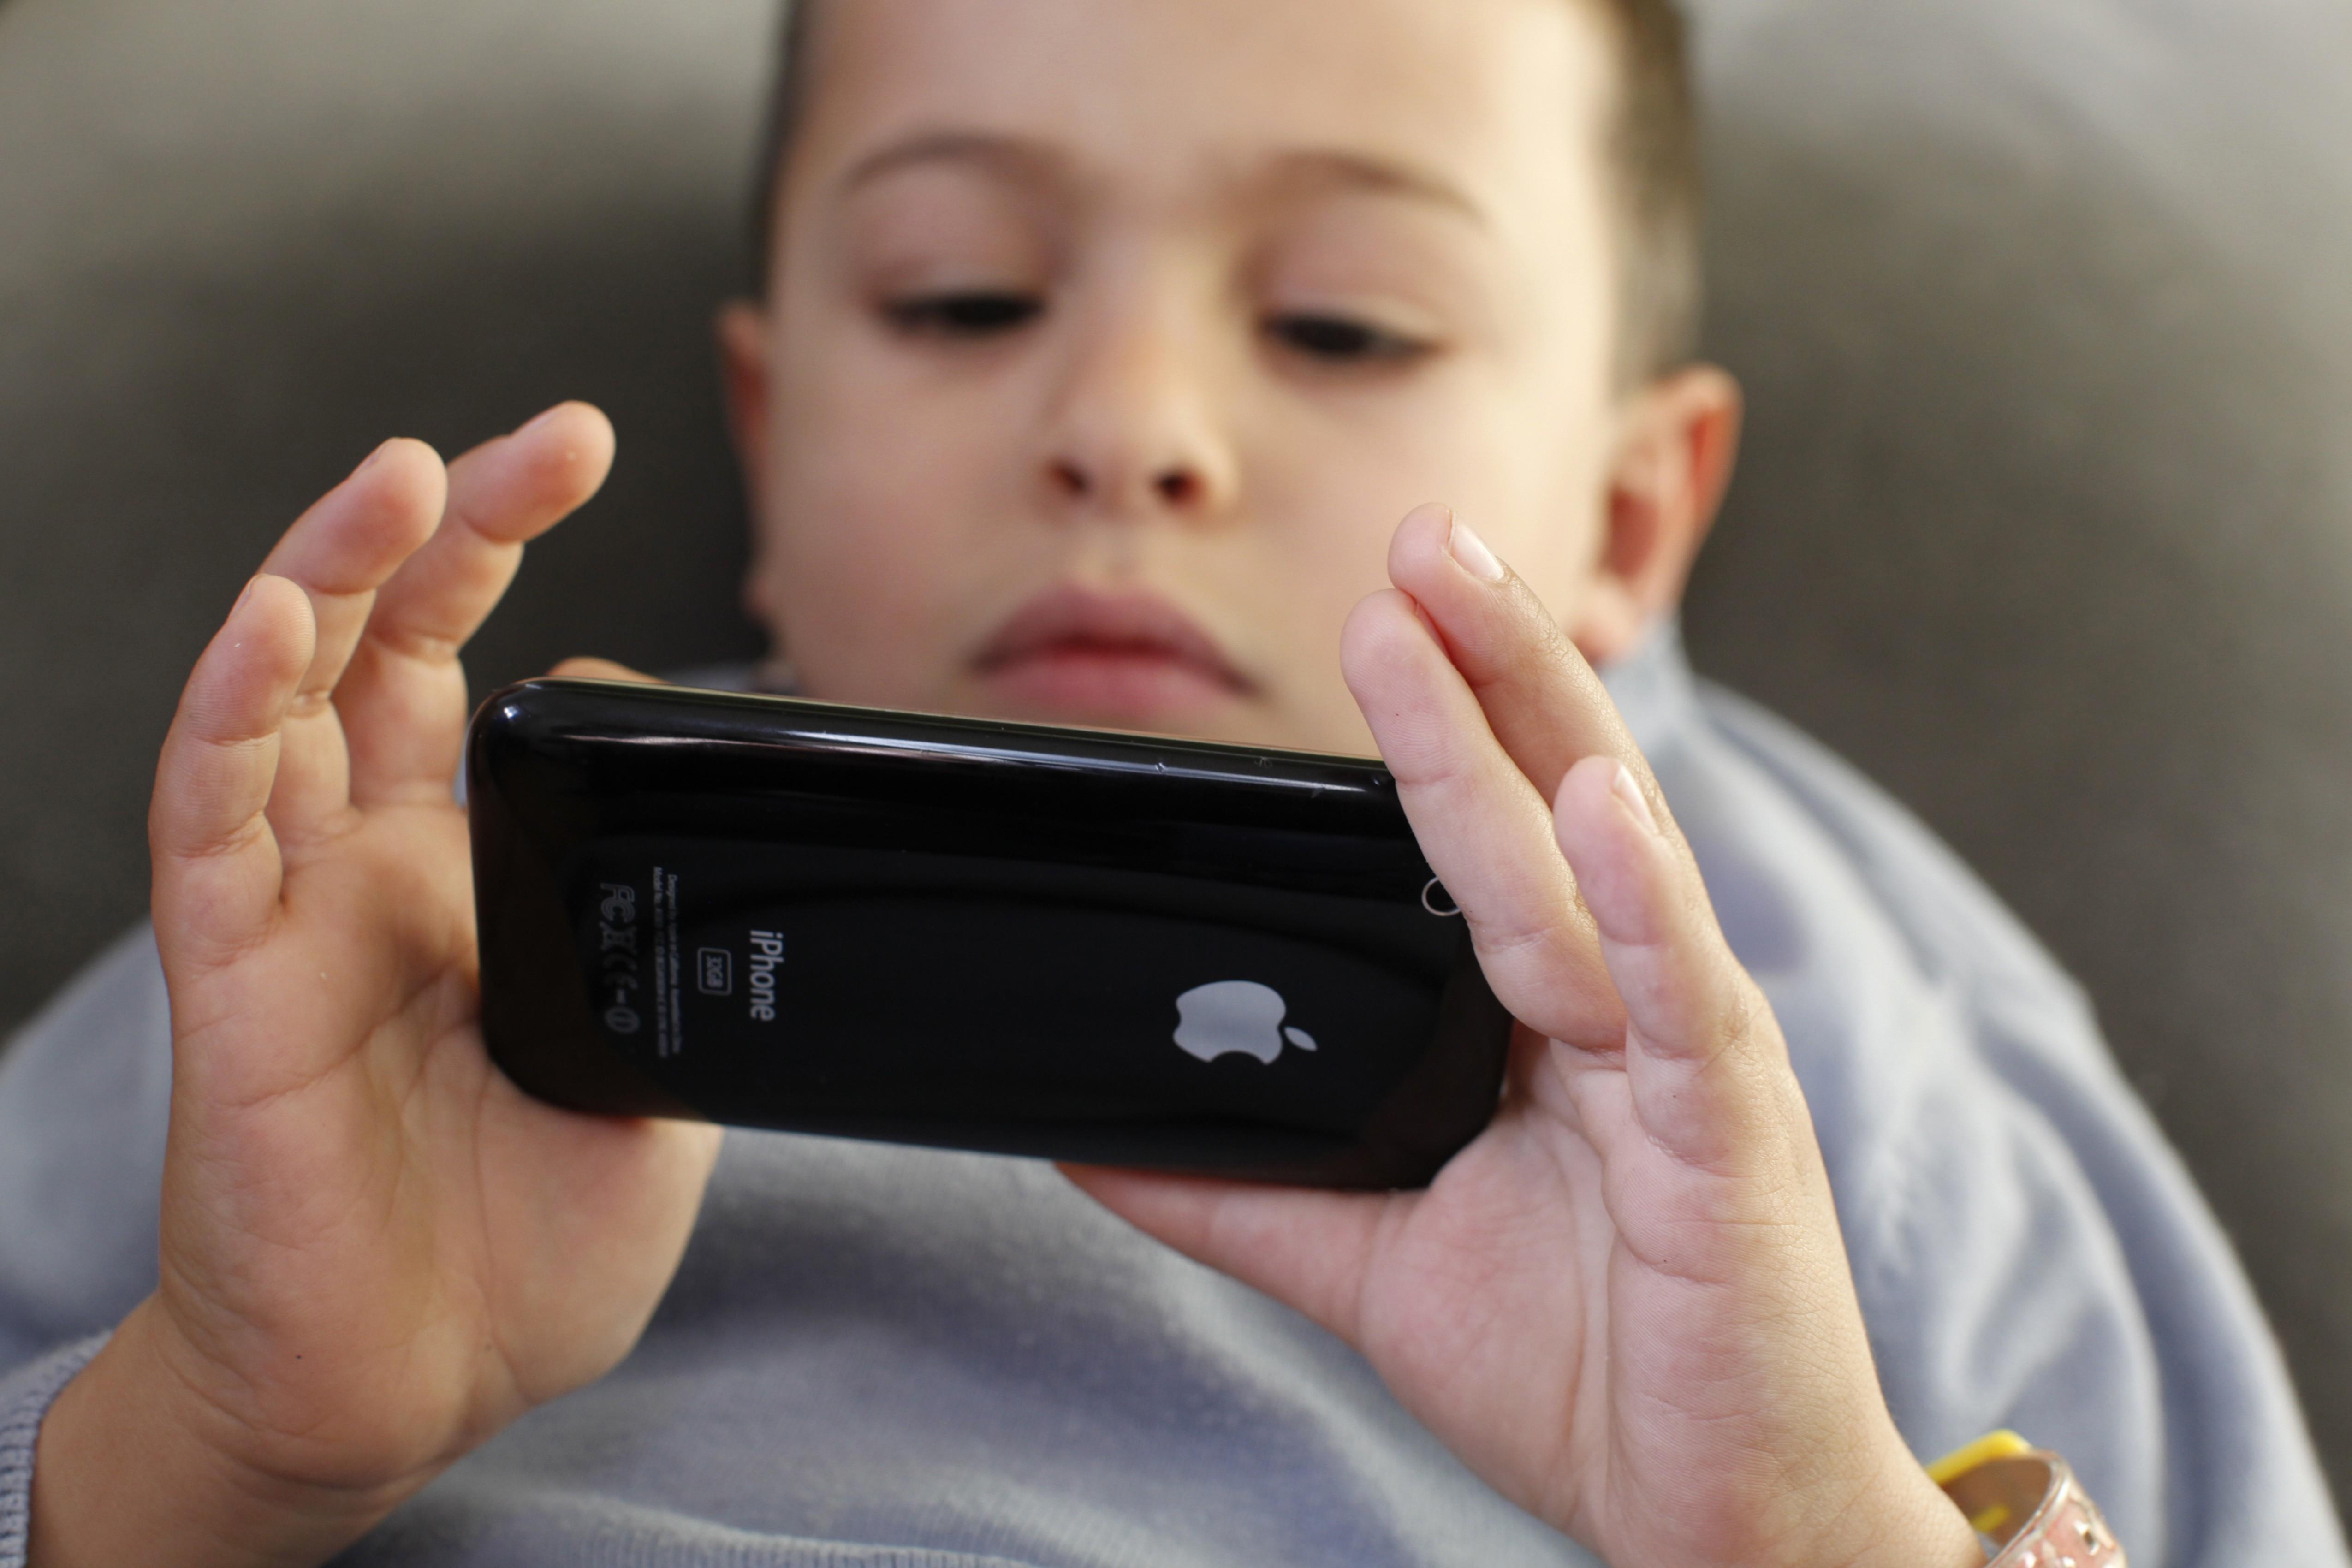 6-year-old boy playing with an Iphone, France